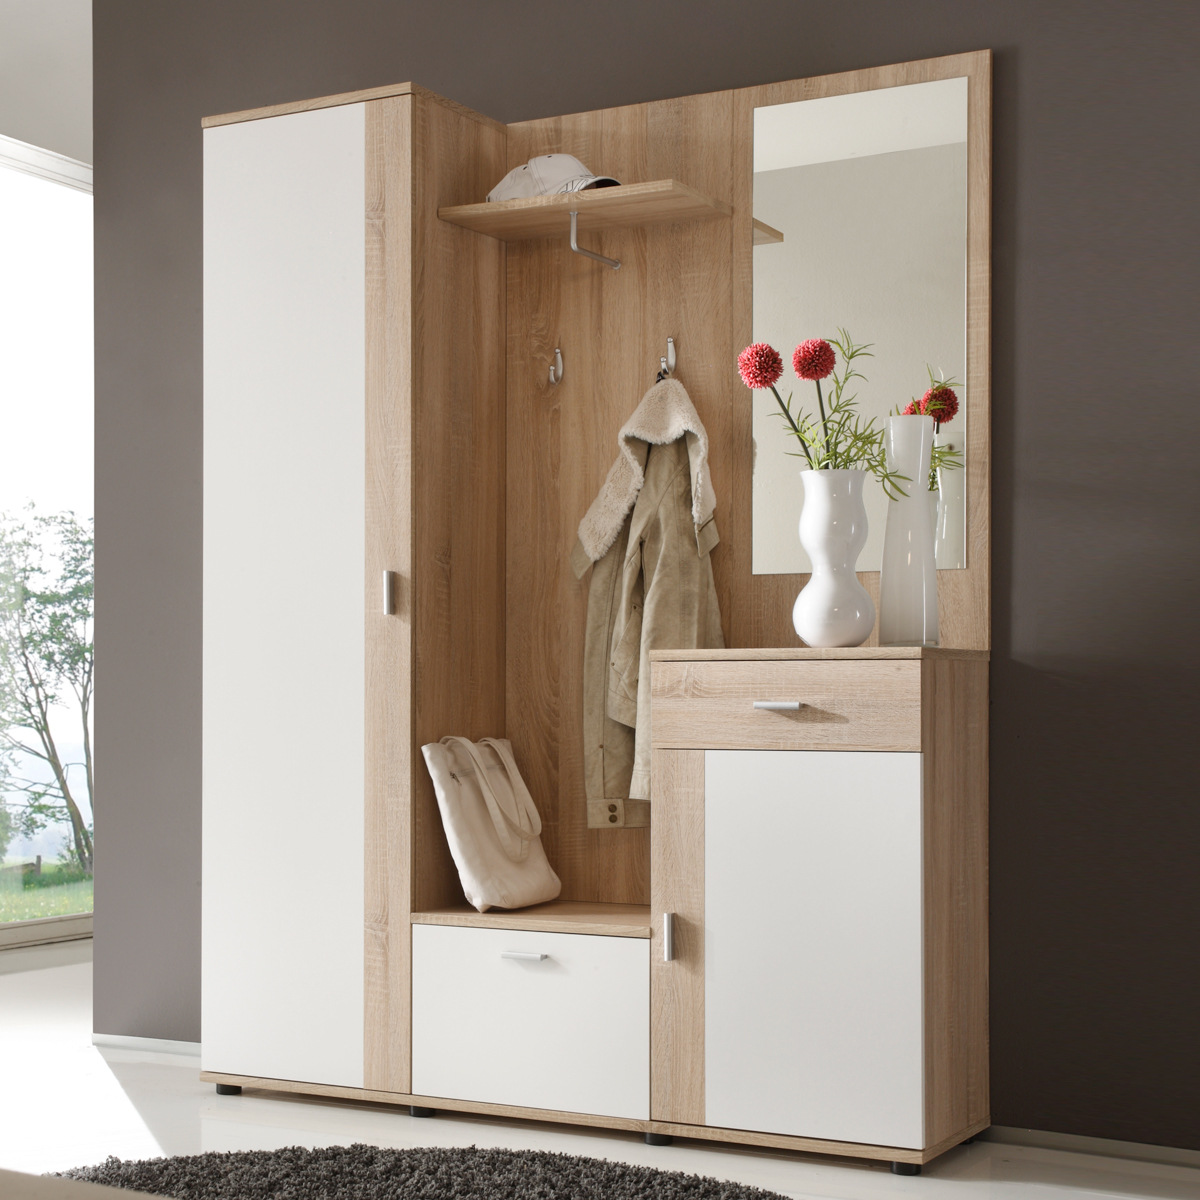 garderoben set patent spiegel schuhschrank kommode sonoma. Black Bedroom Furniture Sets. Home Design Ideas